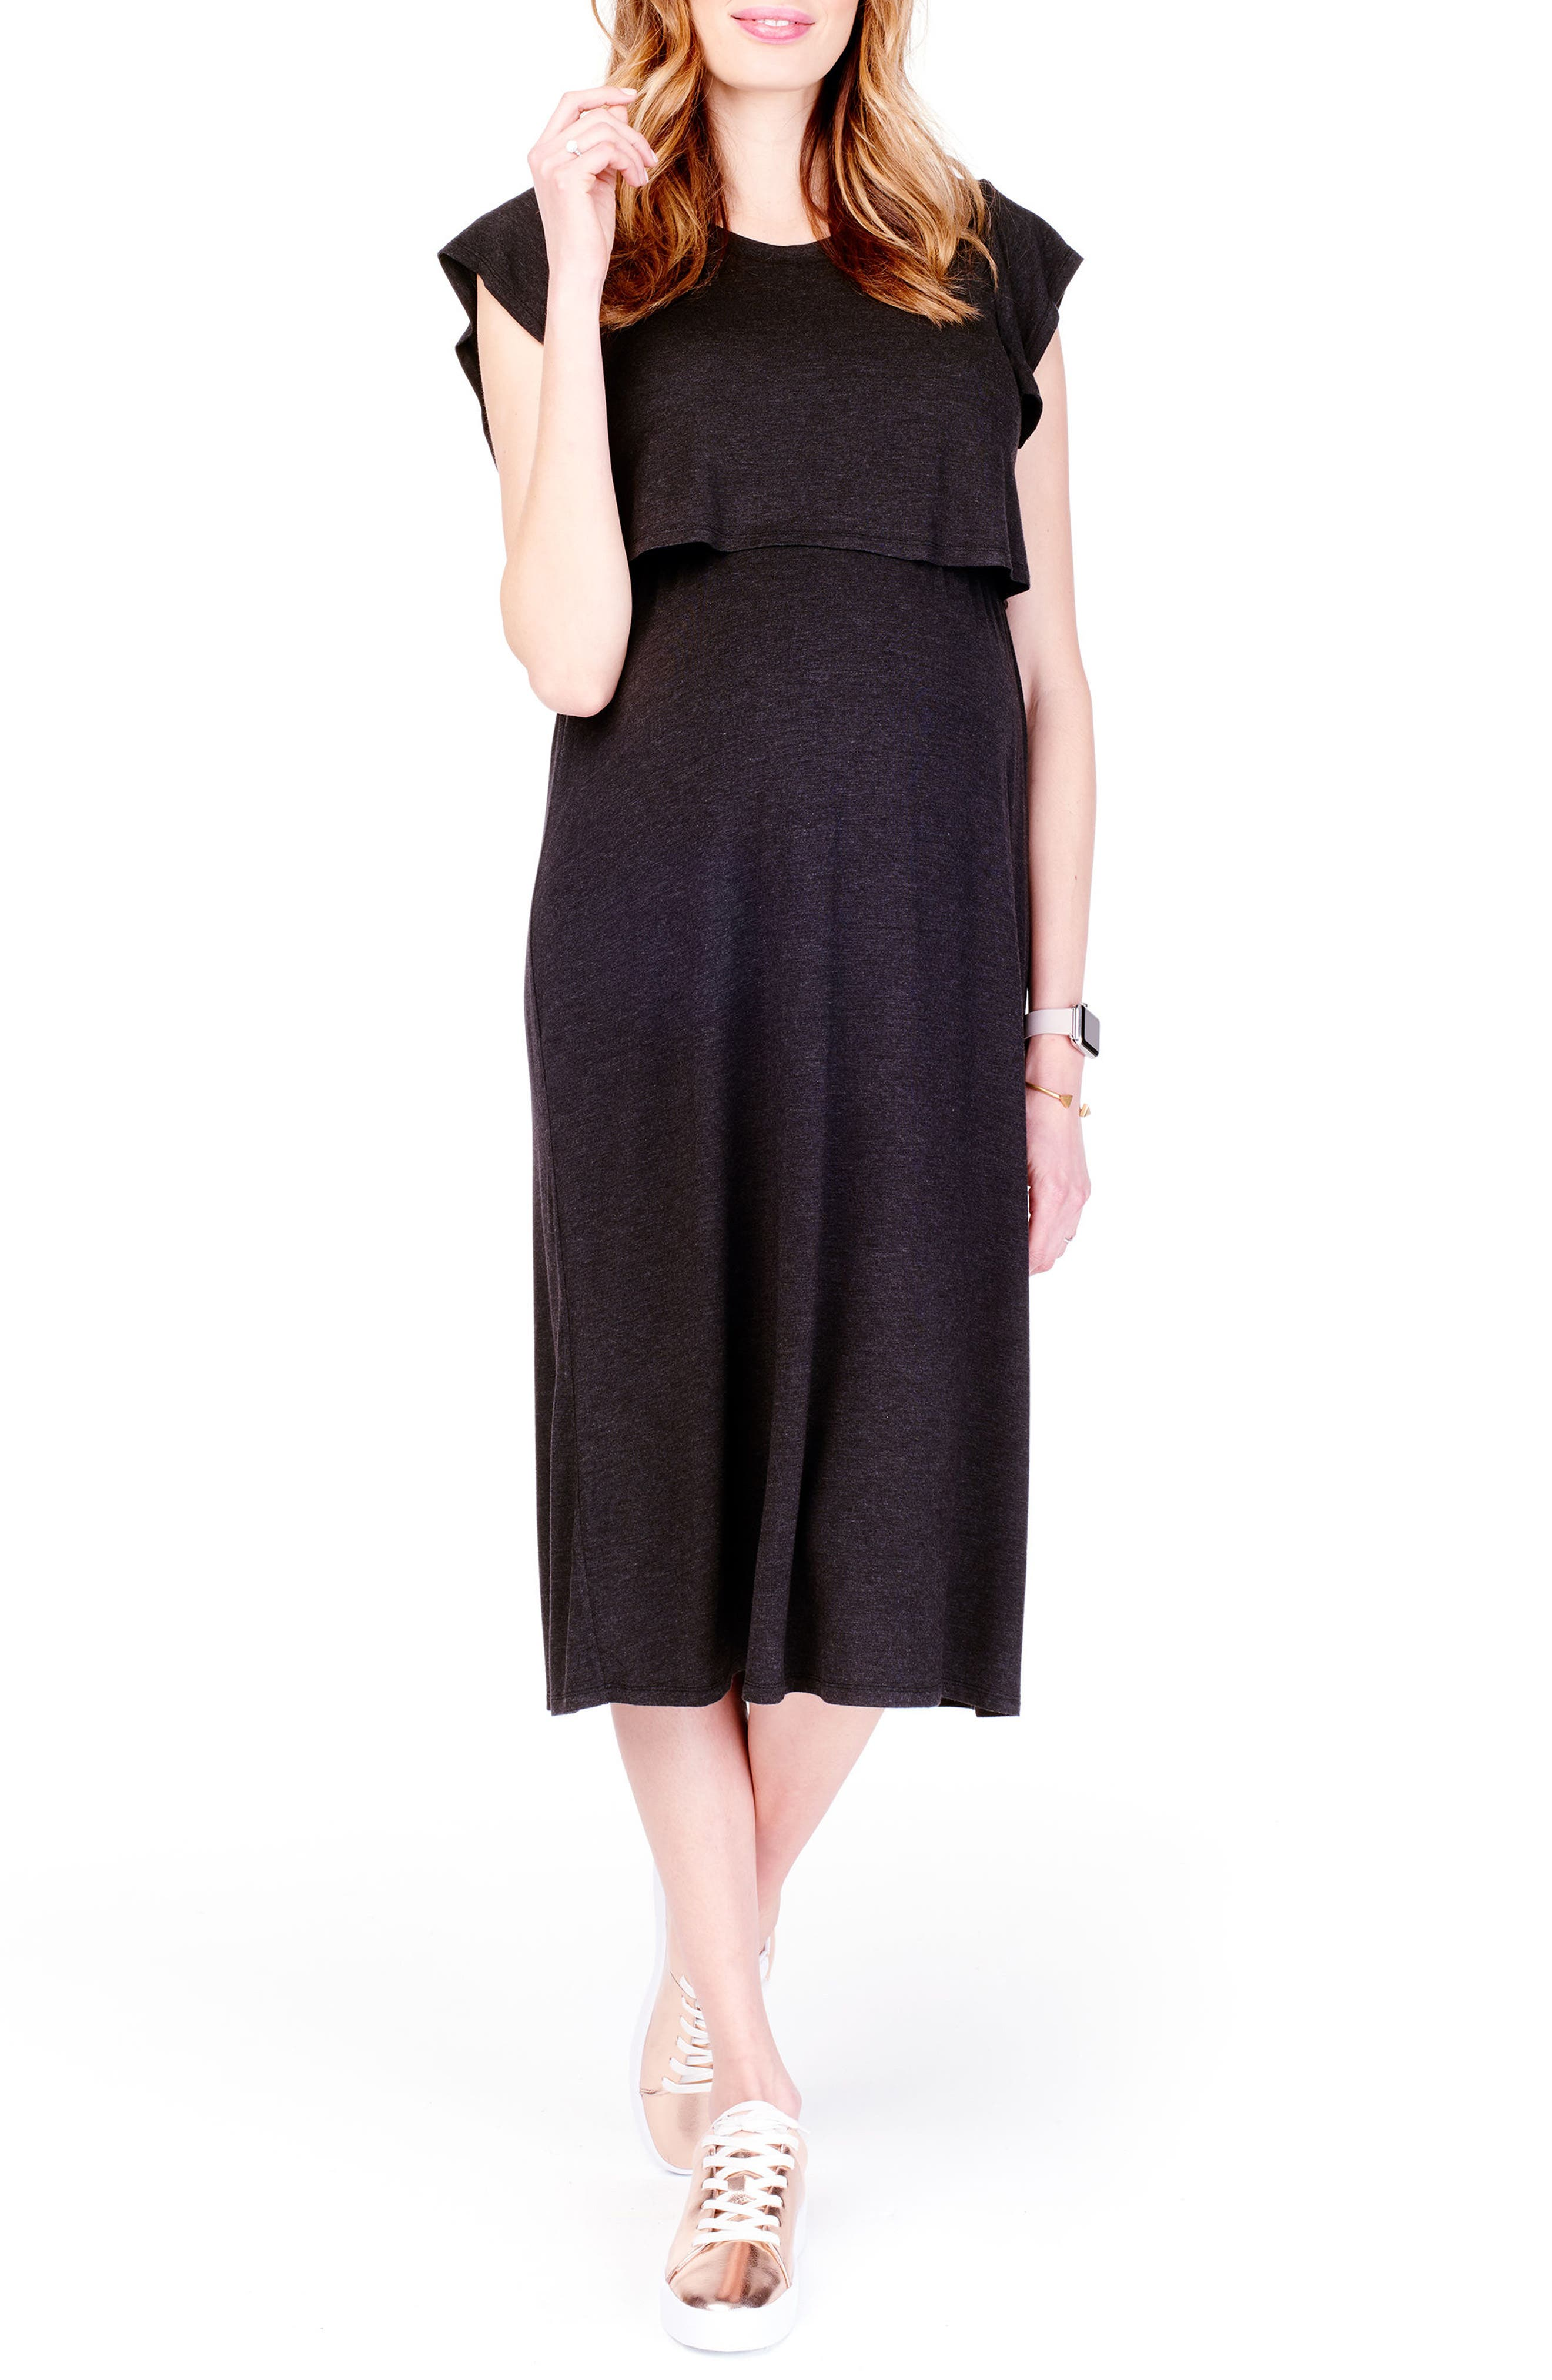 Main Image - Ingrid & Isabel® Maternity/Nursing Midi Dress